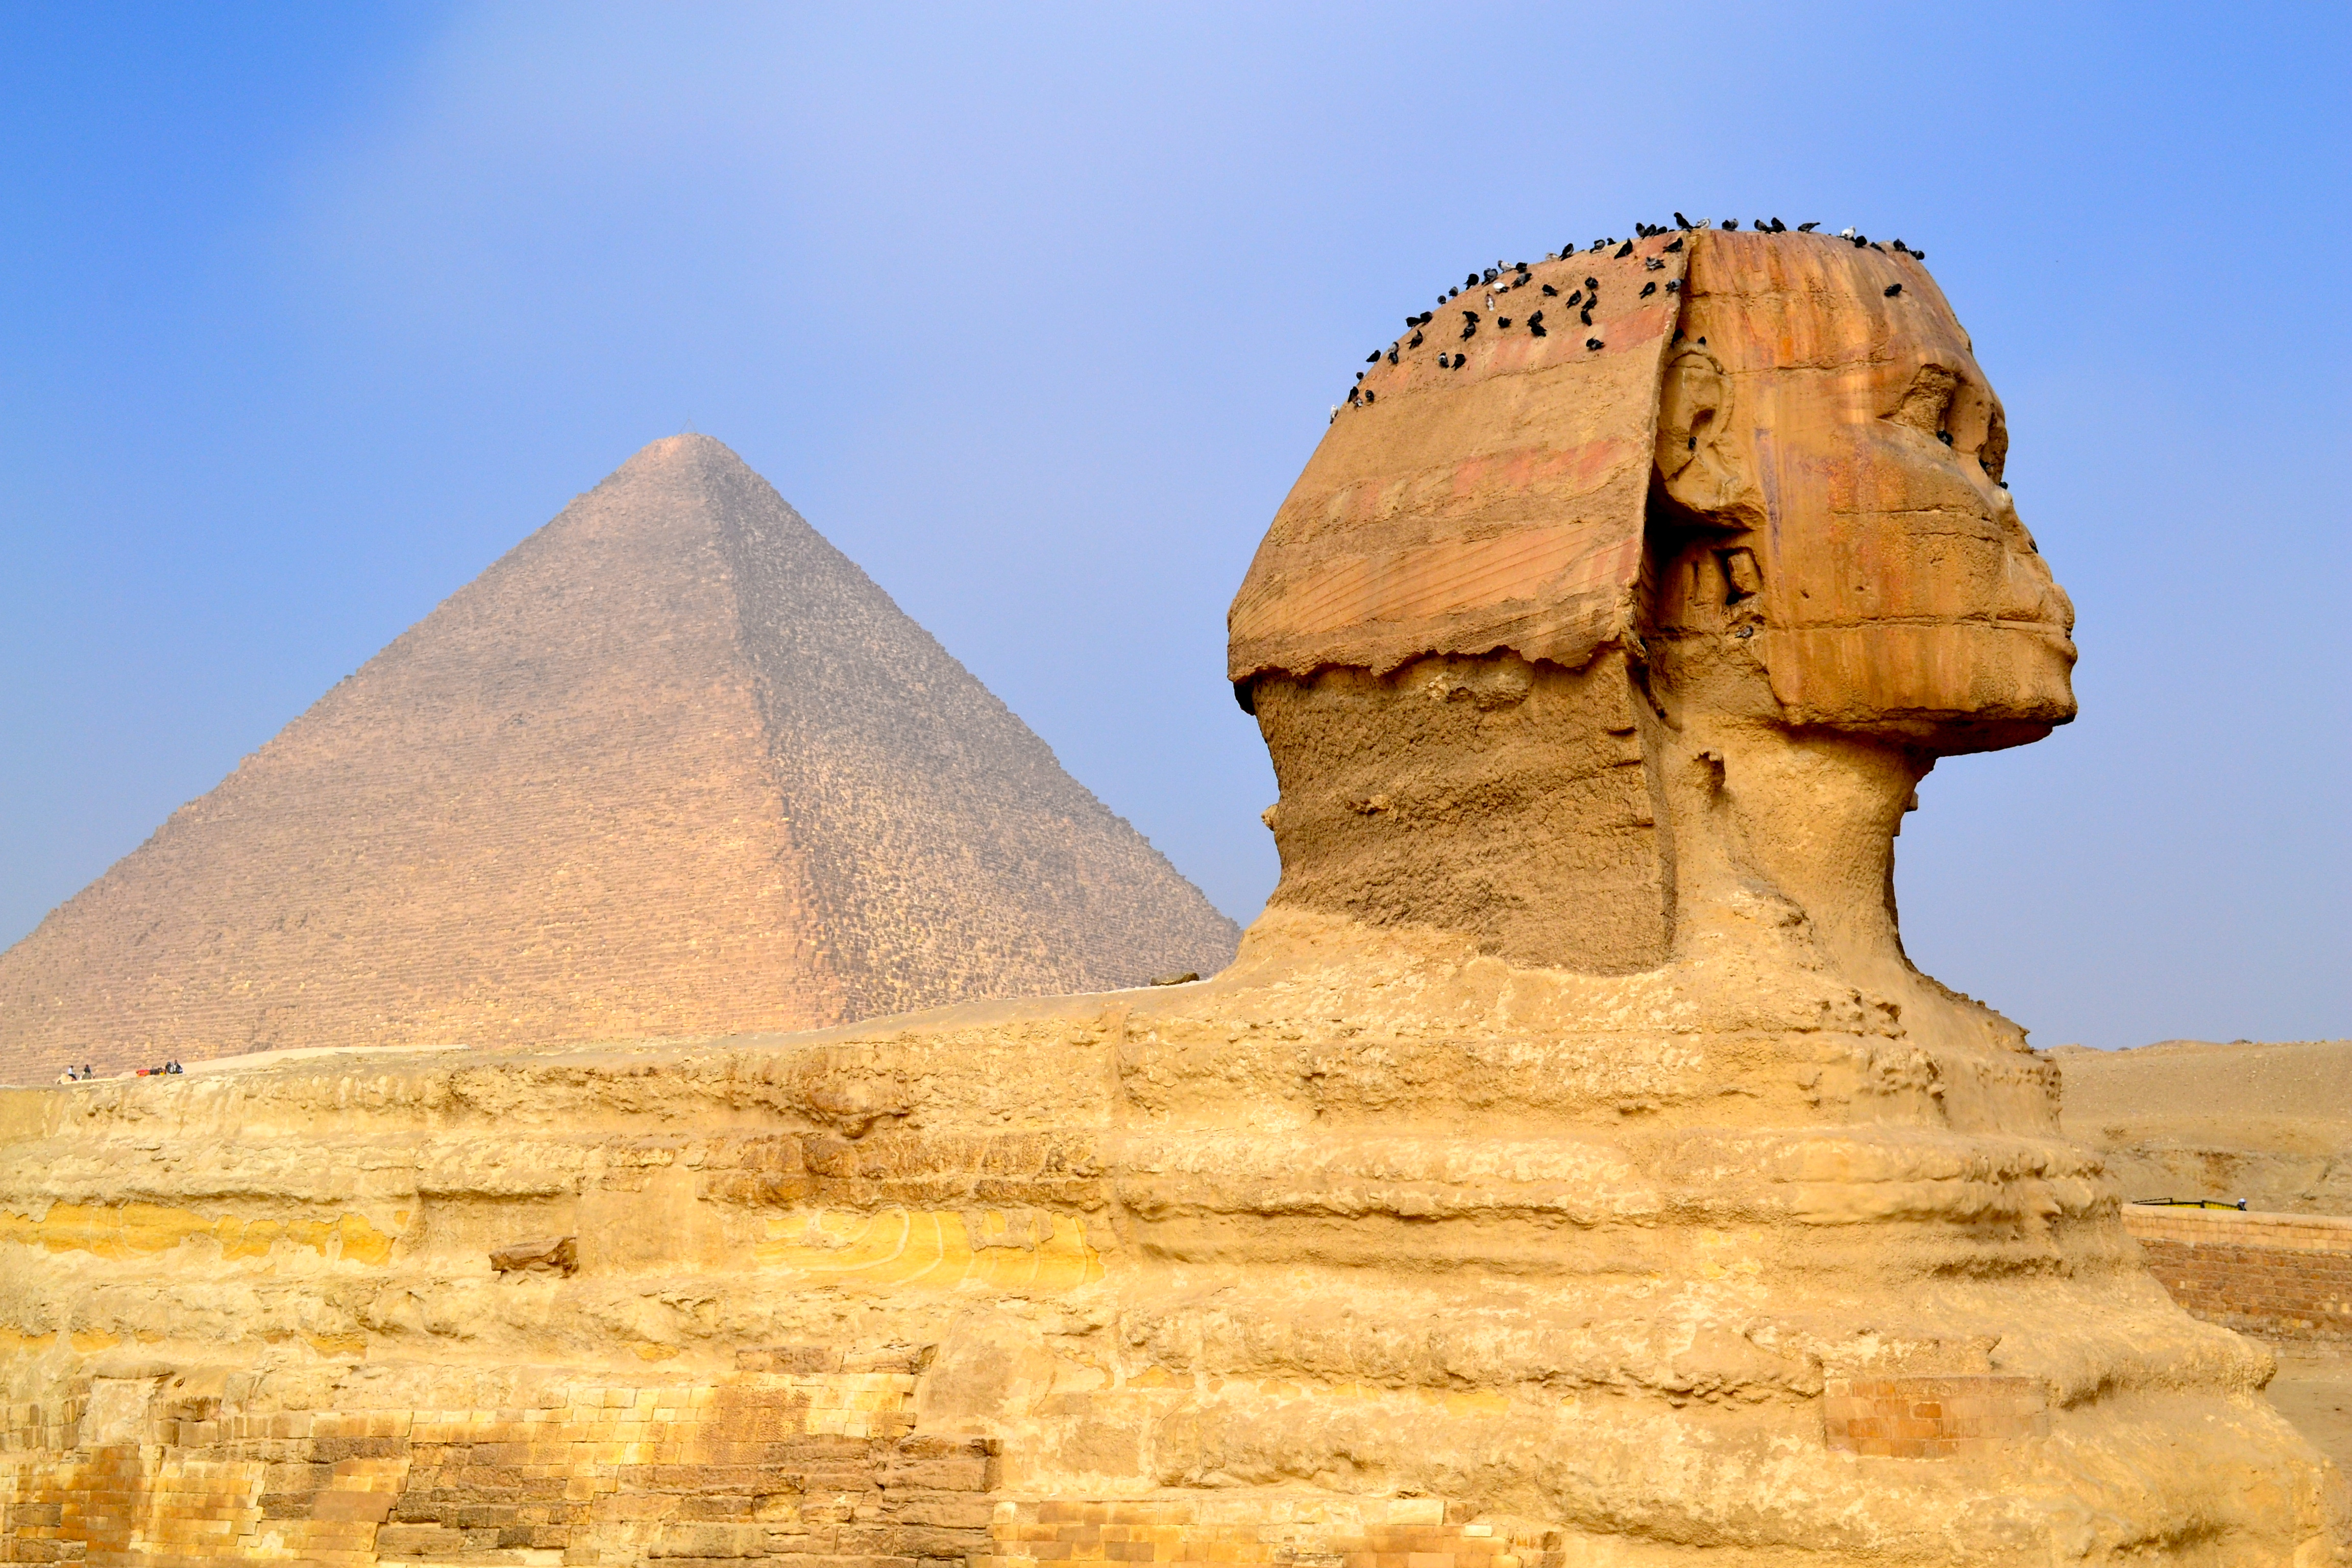 Egypt Pyramids Hd Wallpapers Pyramids King Tut And The Arab Spring Tales From The